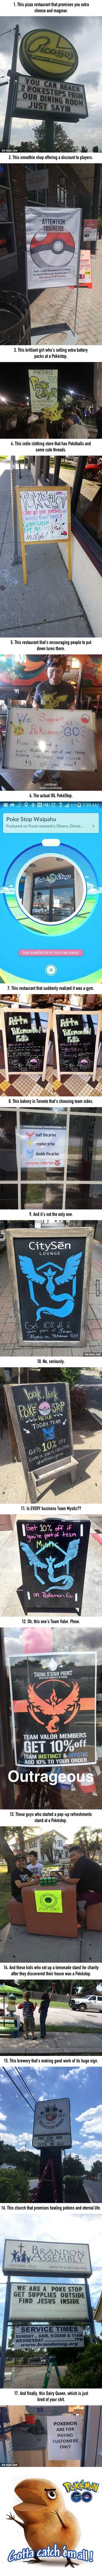 17 Small Businesses That Are Totally Cashing In On Pokémon Go - 9GAG